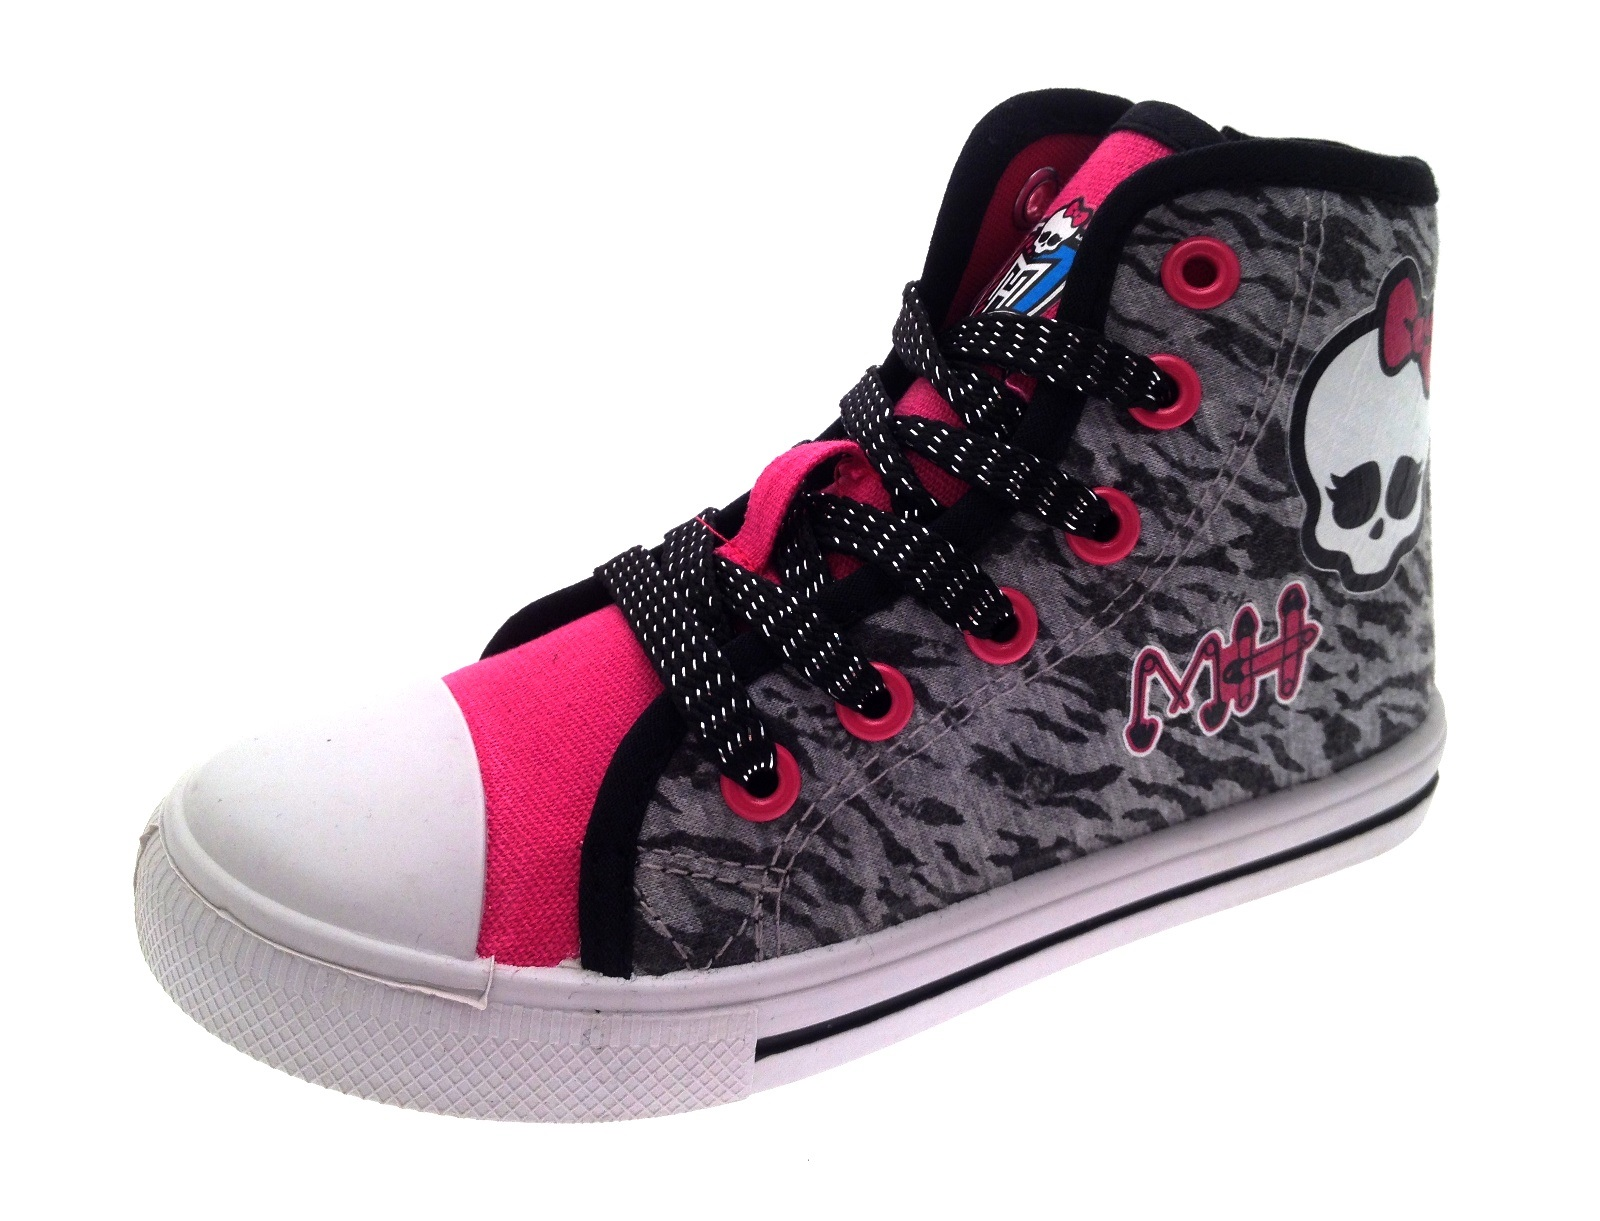 Hand painted Monster High Sweet or any other by ArtByBi, Find this Pin and more on Monster high shoes by Катя Д. Hand painted Monster High, Sweet or any other character.. on canvas shoes! on Etsy, $